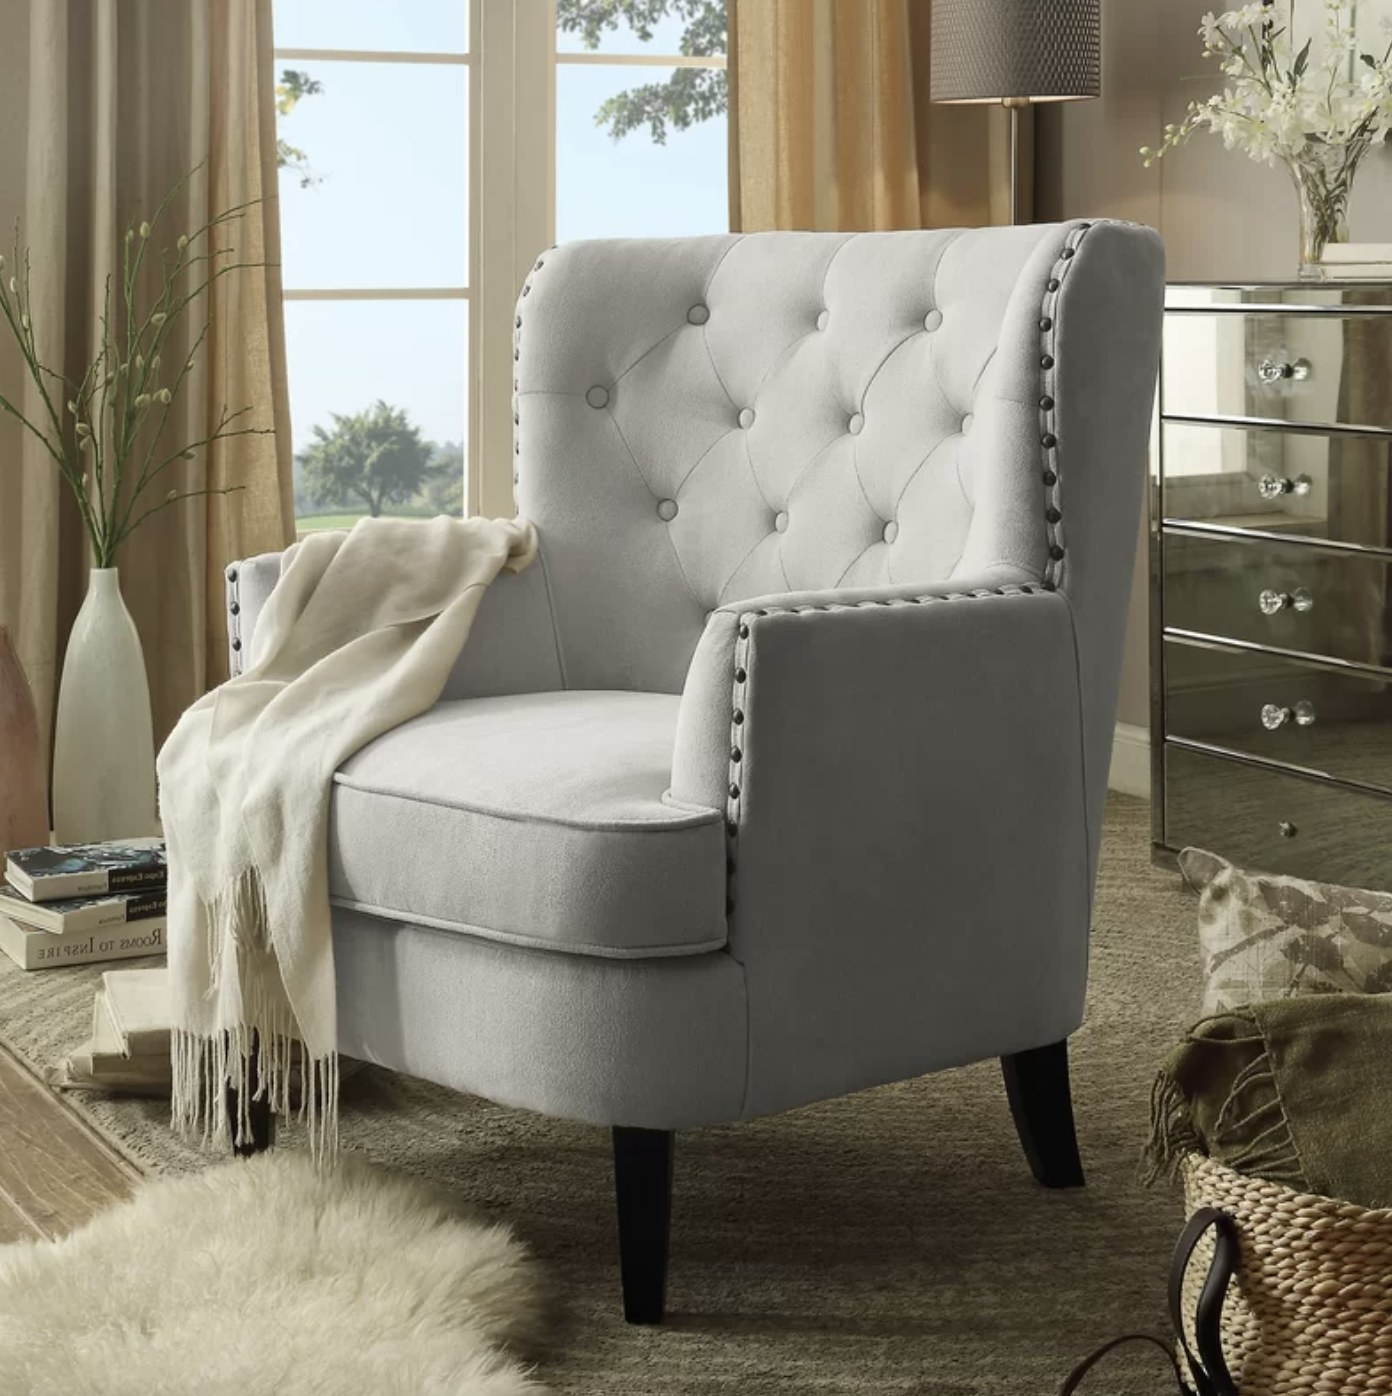 the chair in grey with a blanket draped over it